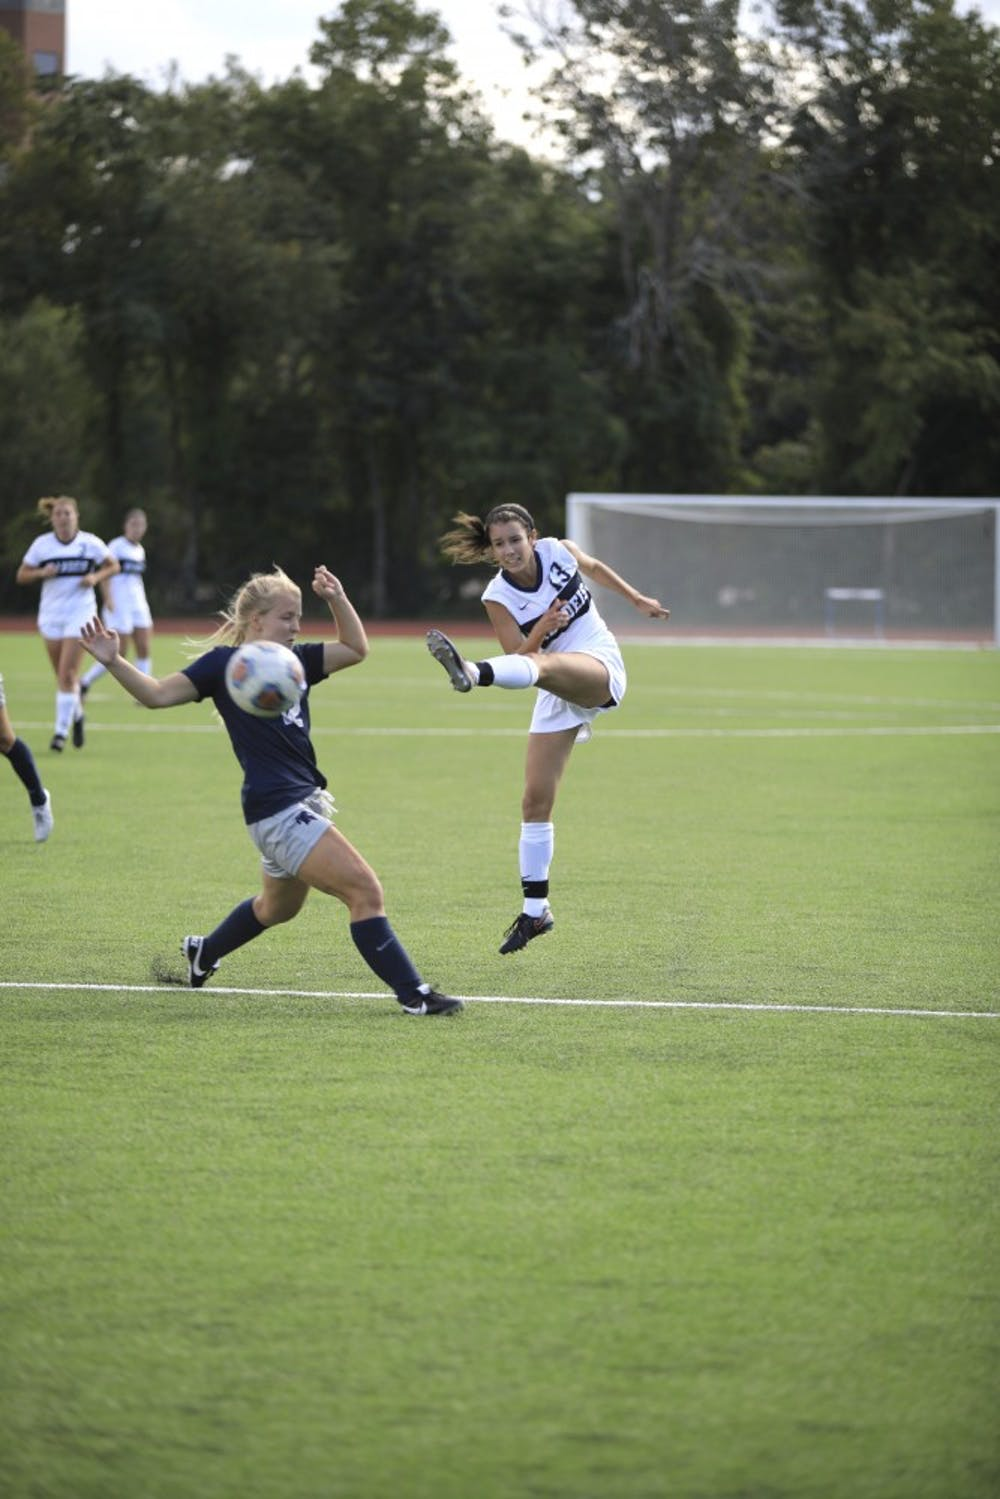 wsoccer-vs-case-homecoming-9-29-18-ys1-0457